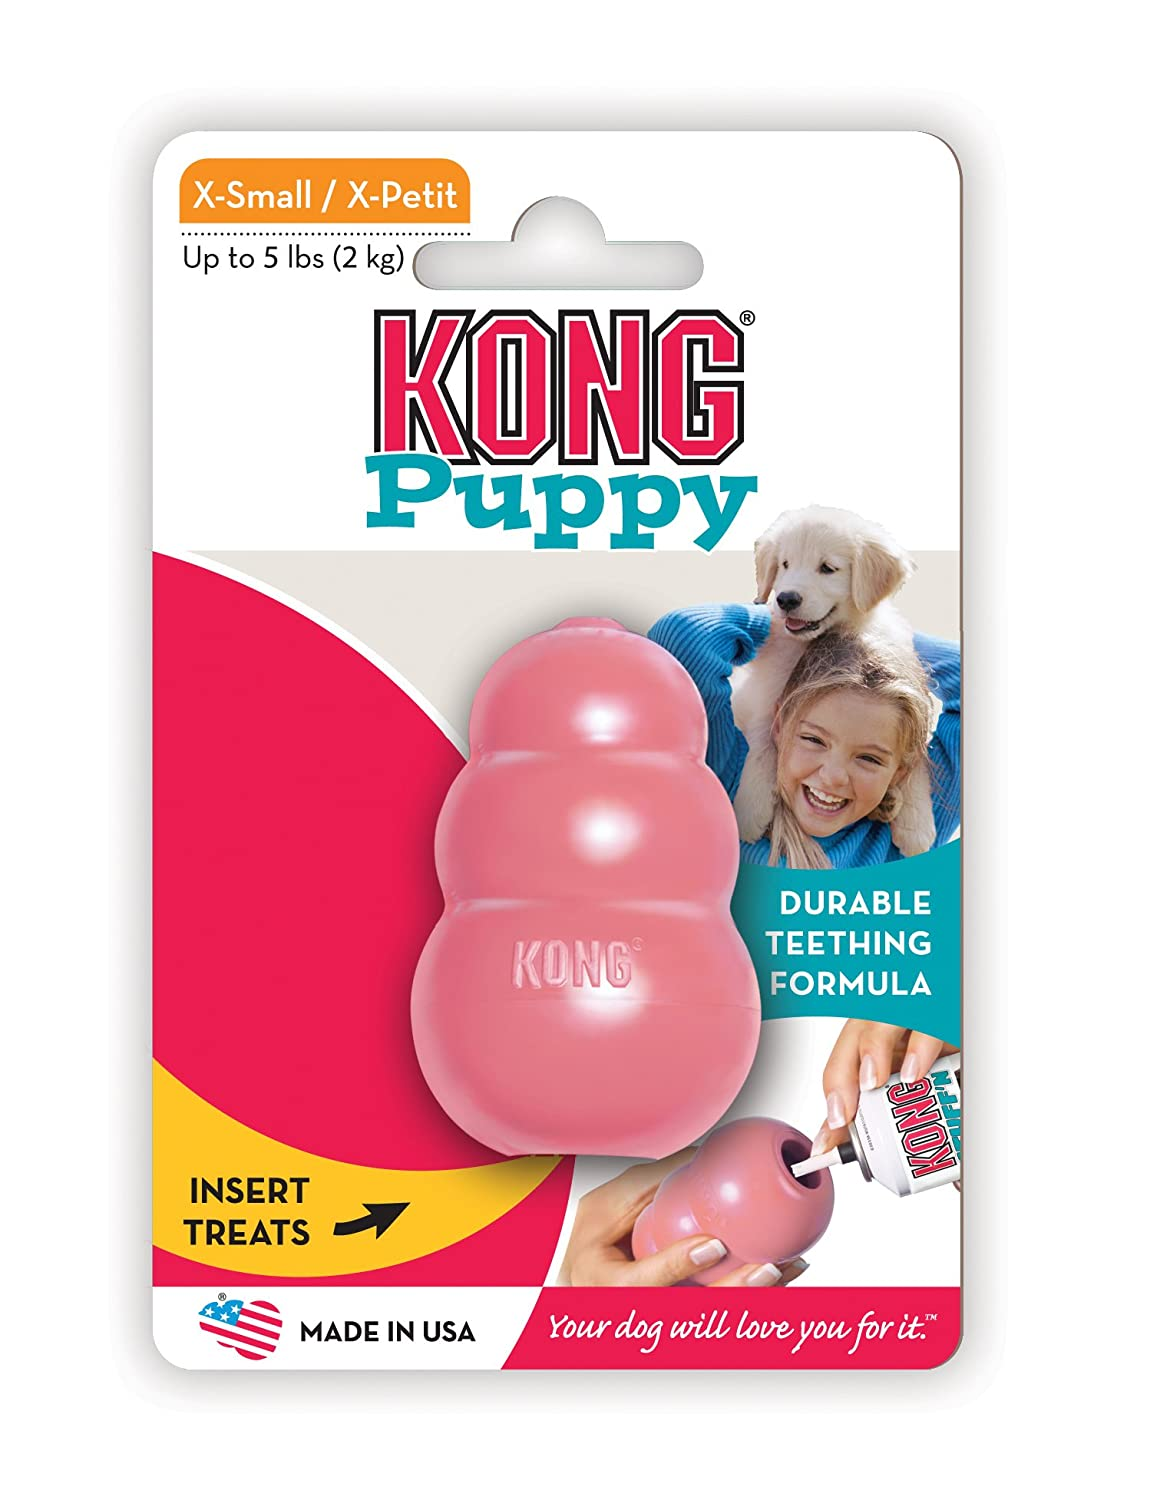 Toys For Teething : Kong puppy teething aid chew and treat toy durable rubber